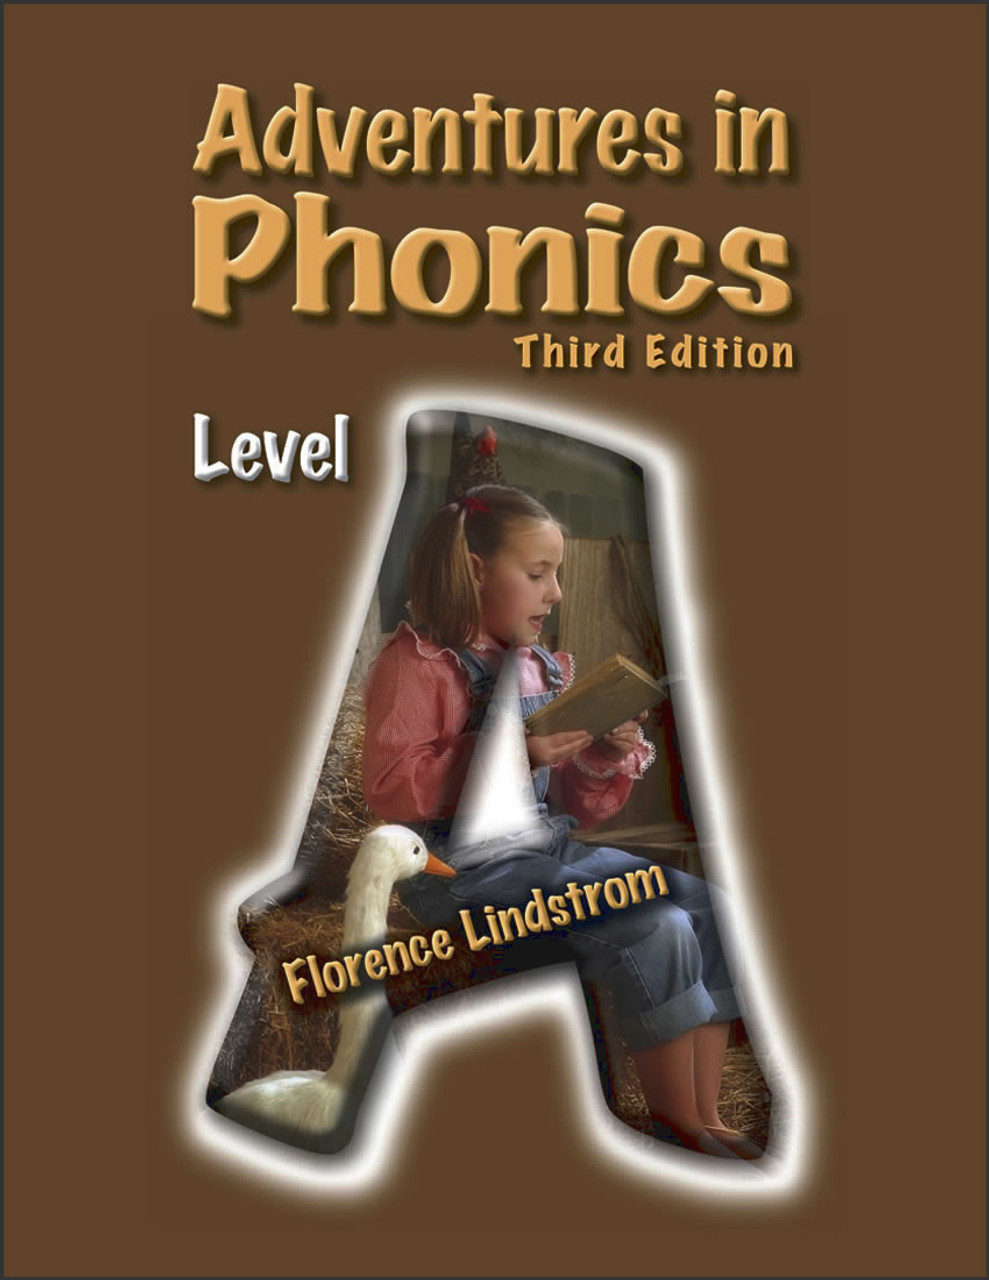 Adventures in Phonics Level A, 3rd edition